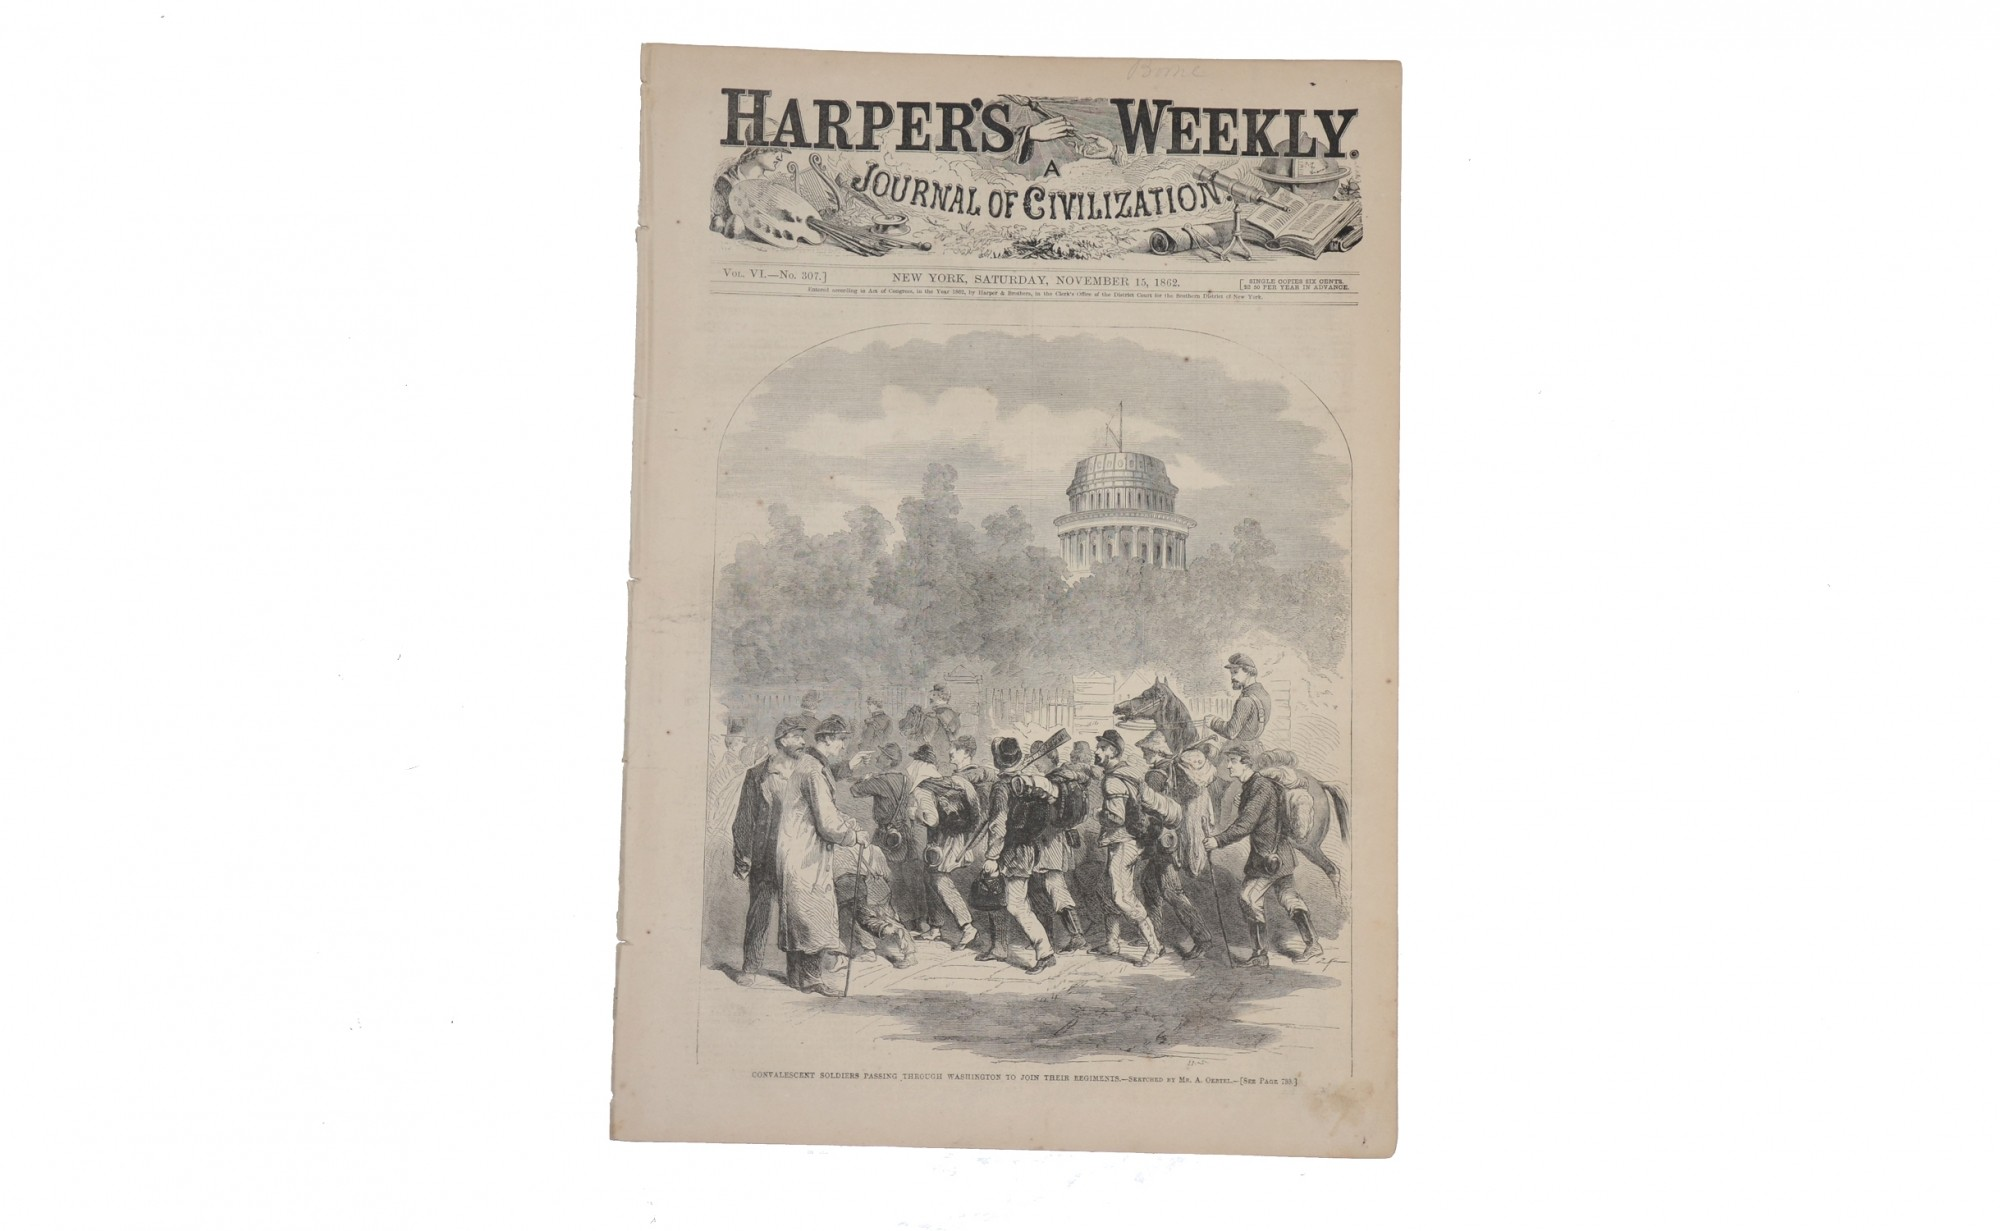 HARPER'S WEEKLY, DATED NOVEMBER 15, 1862